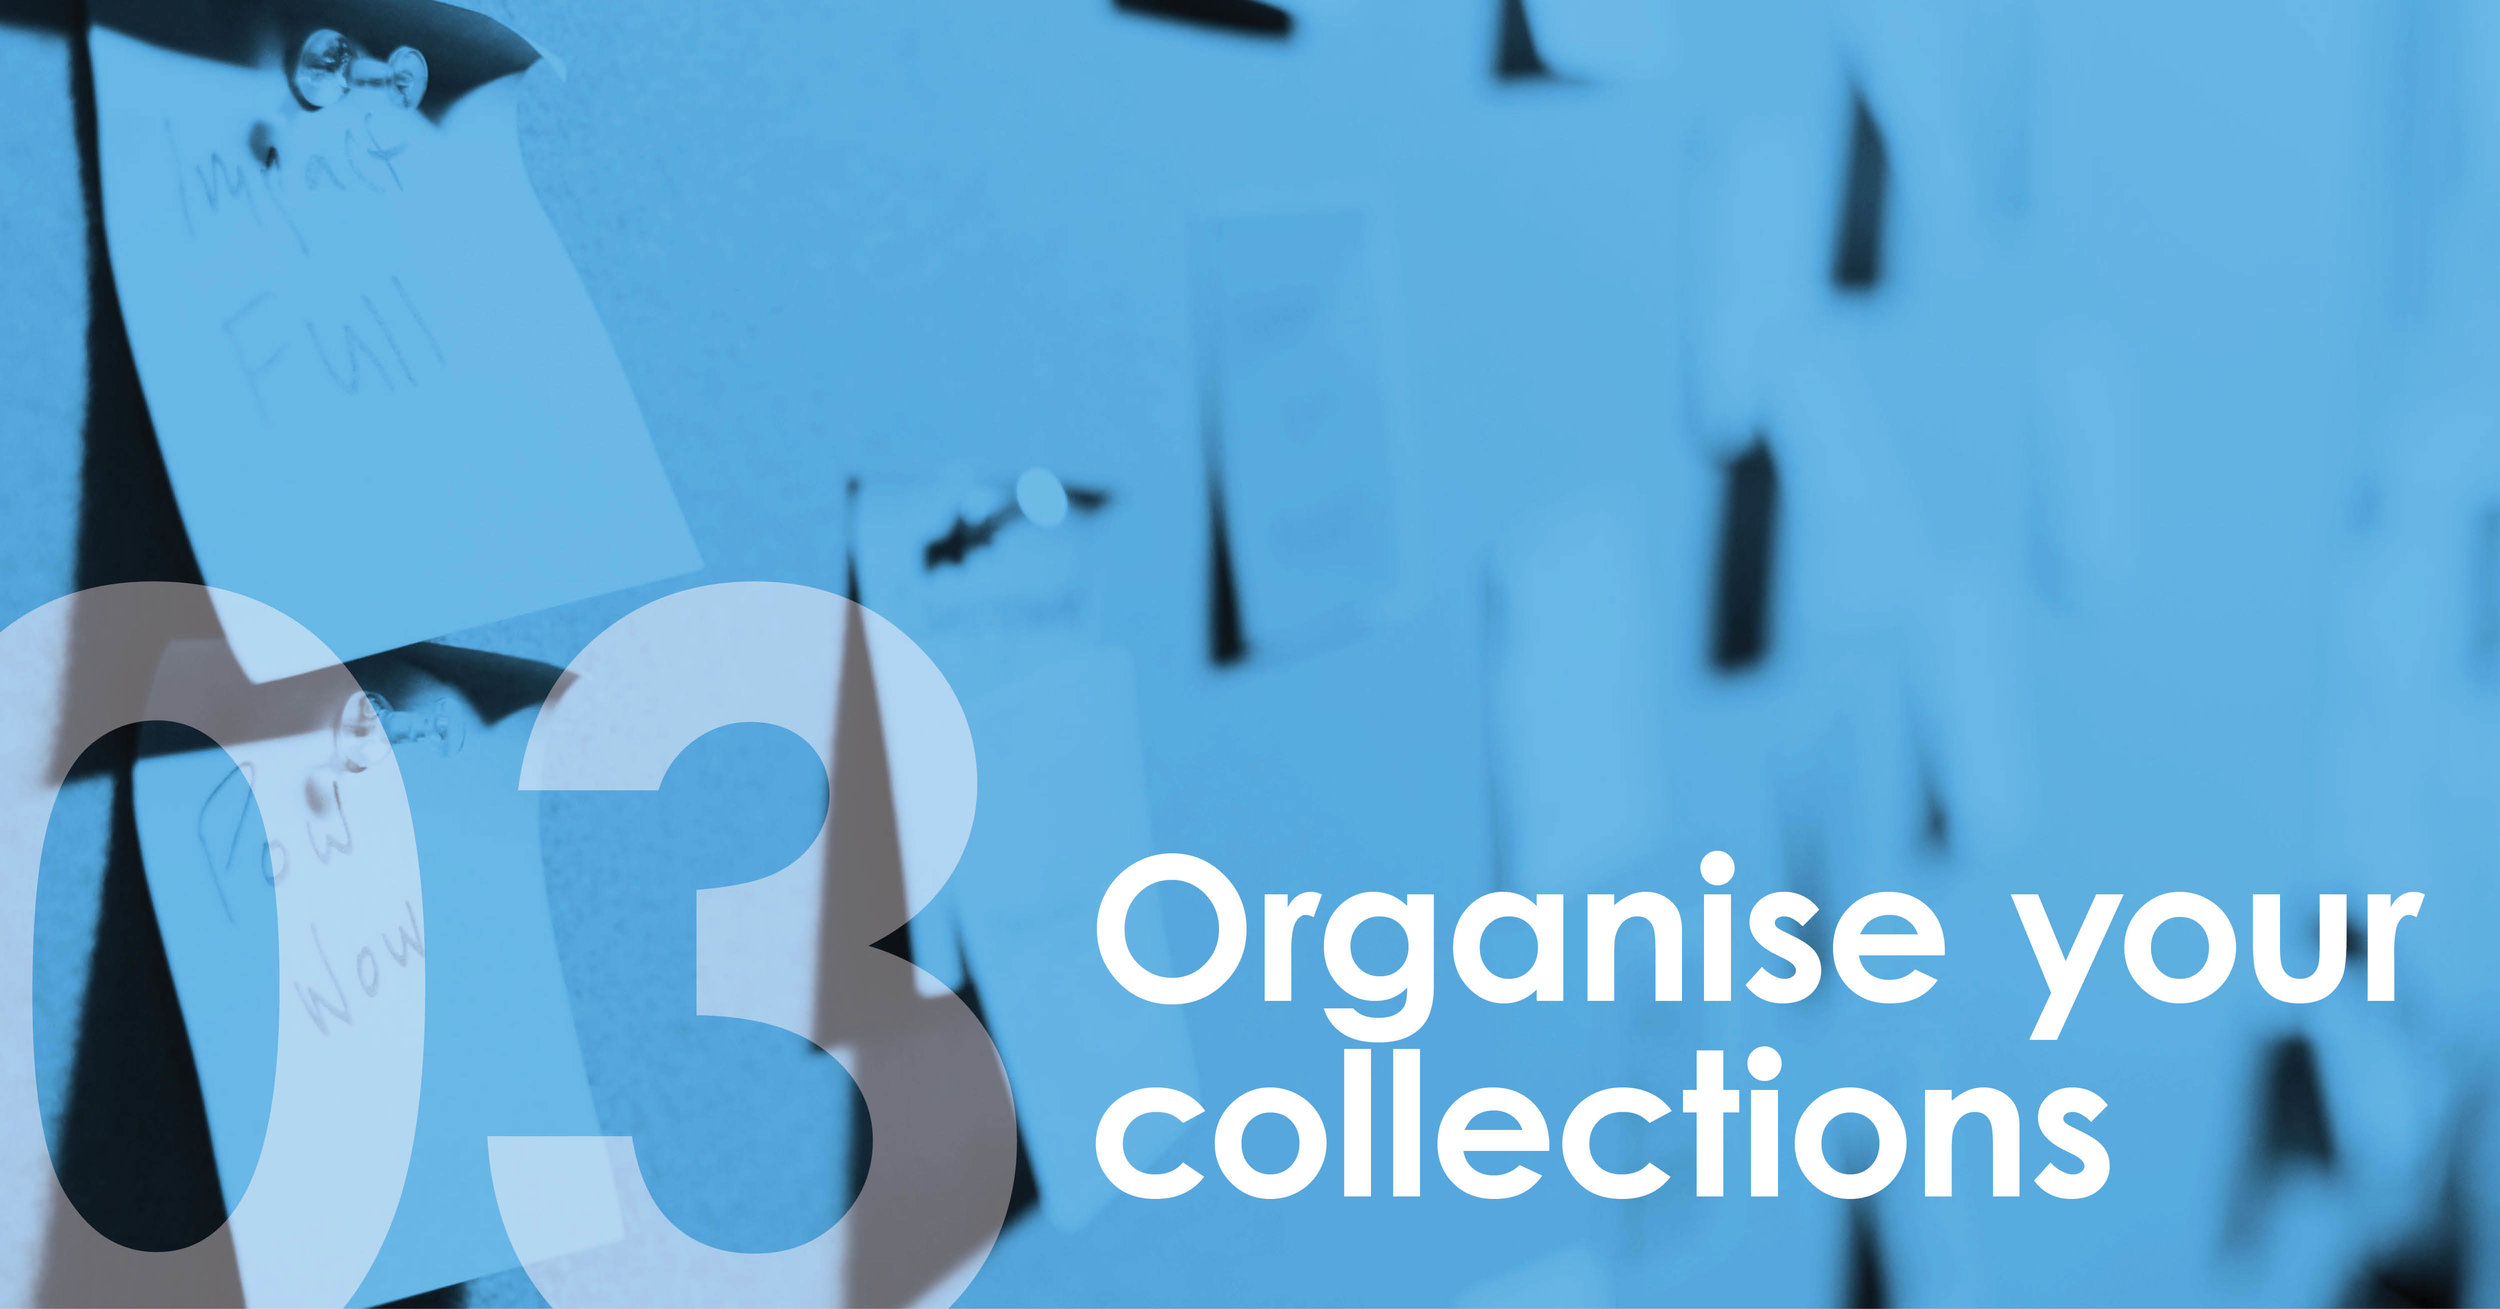 03. Organise your collections